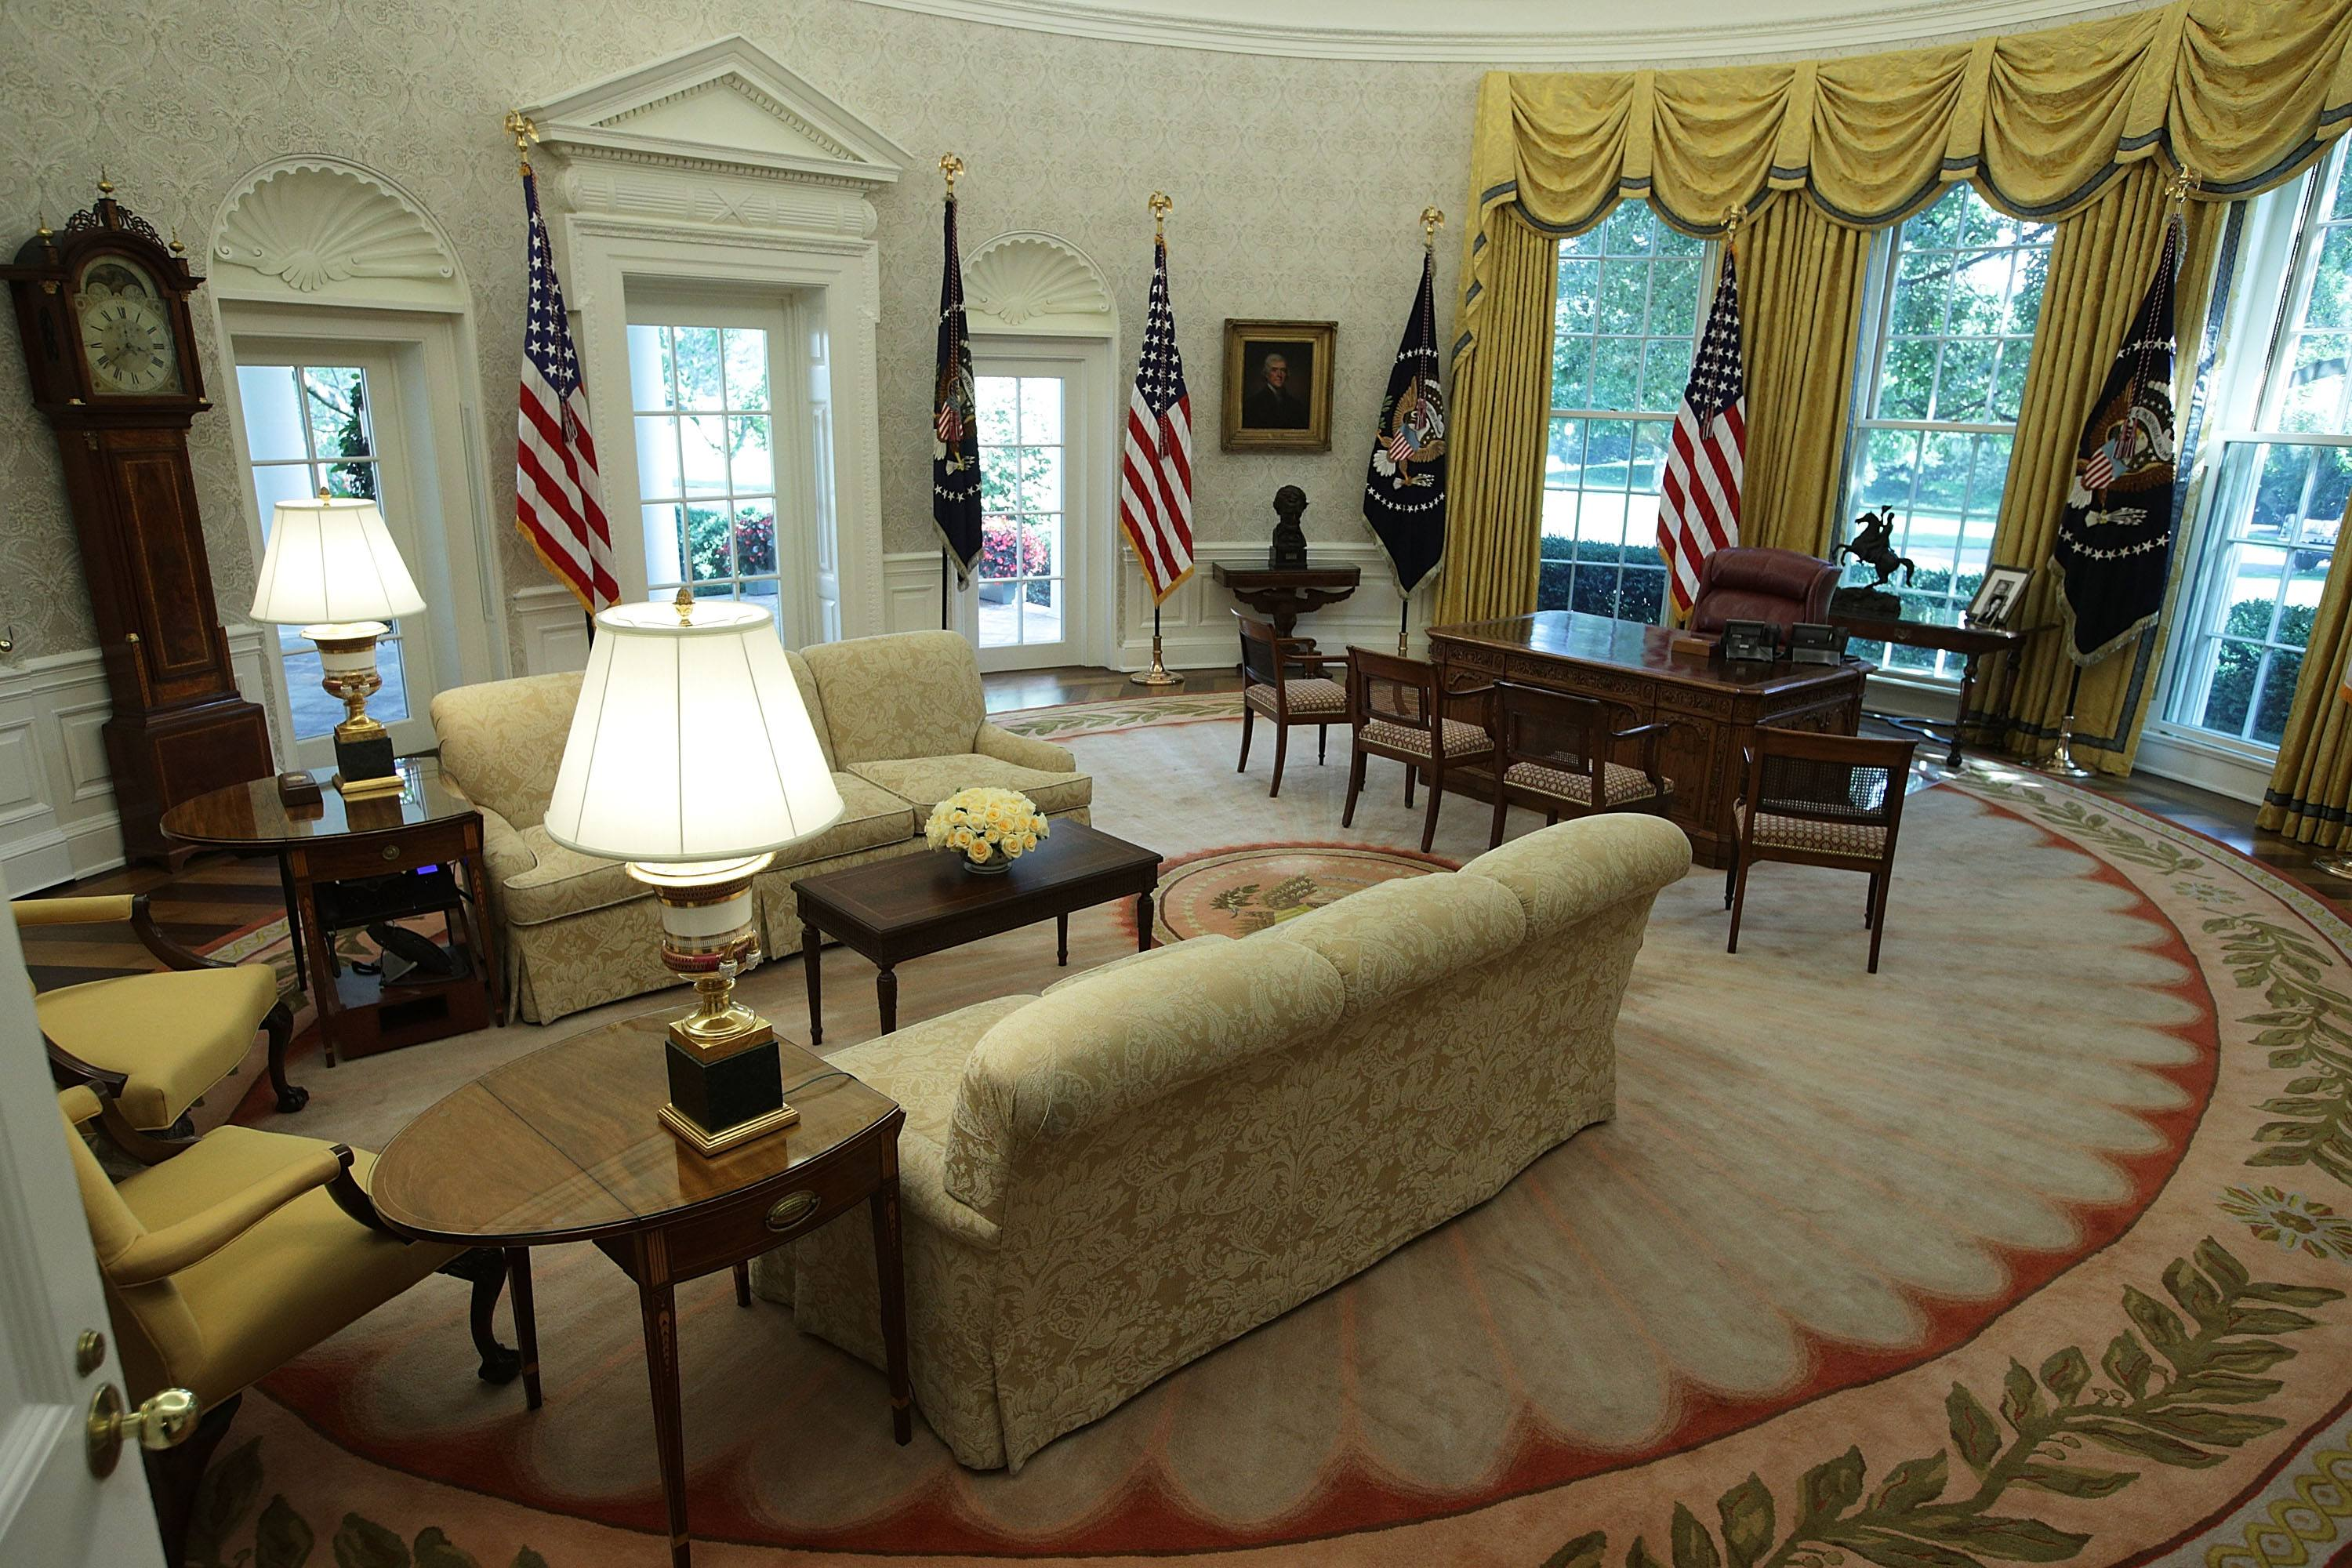 white house floor1 green roomjpg. White House Offers Glimpse Of Recently Finished Renovations Floor1 Green Roomjpg